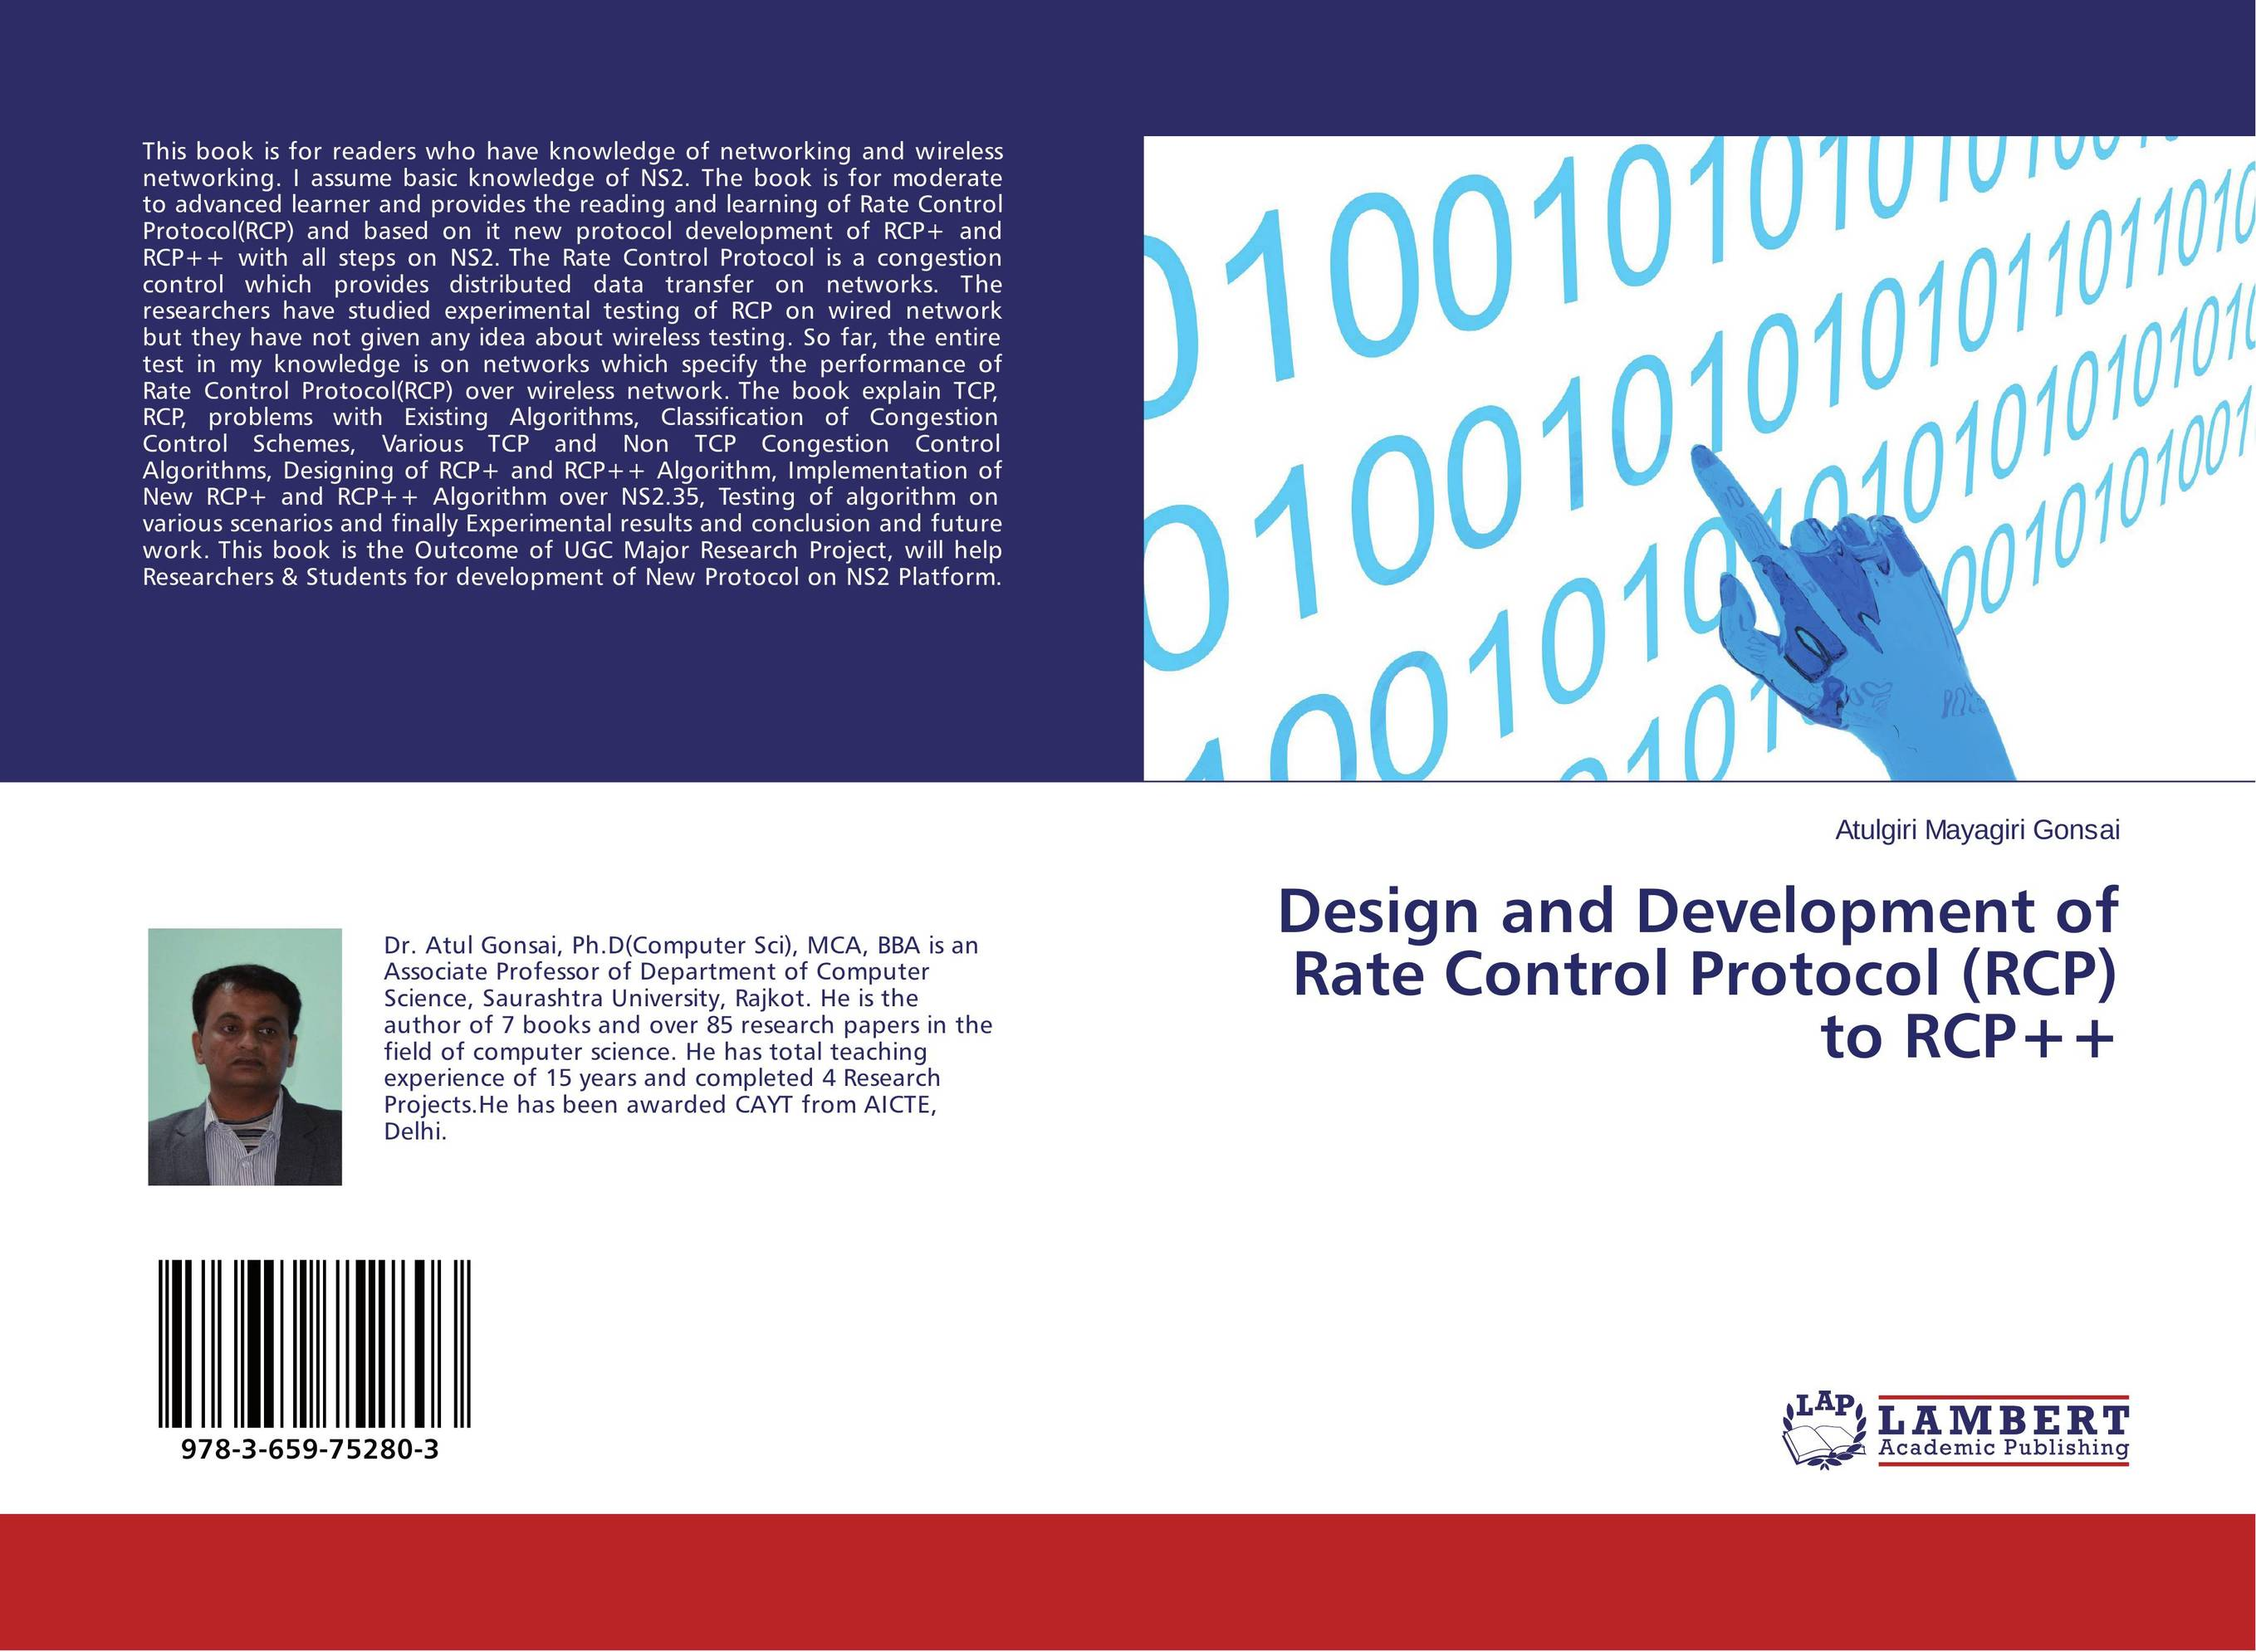 Design and Development of Rate Control Protocol (RCP) to RCP++